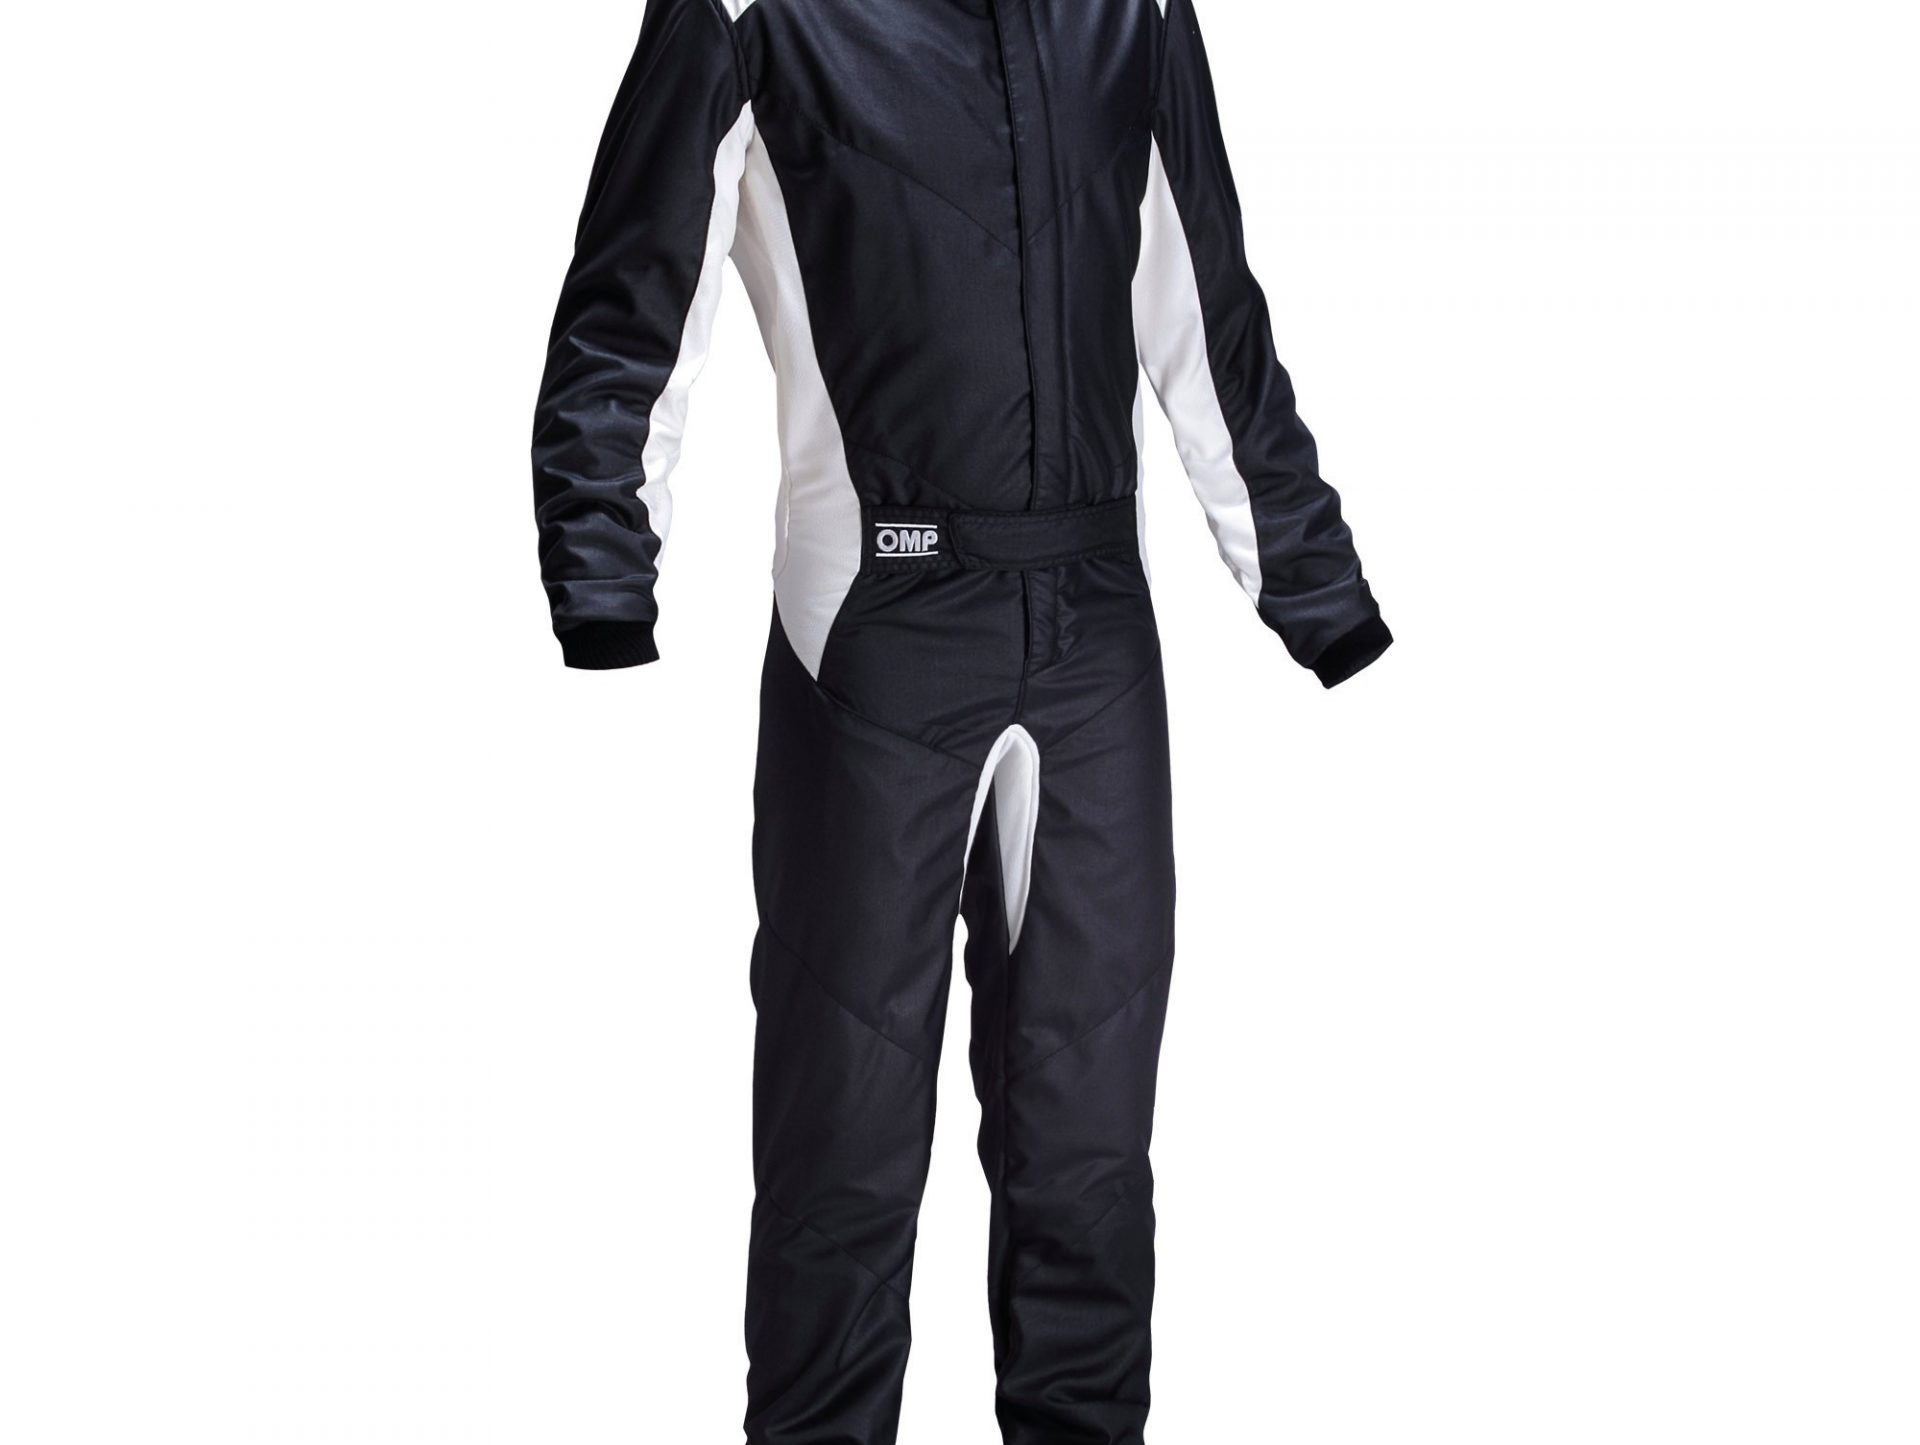 Нов продукт: OMP One S My2020, FIA Suit